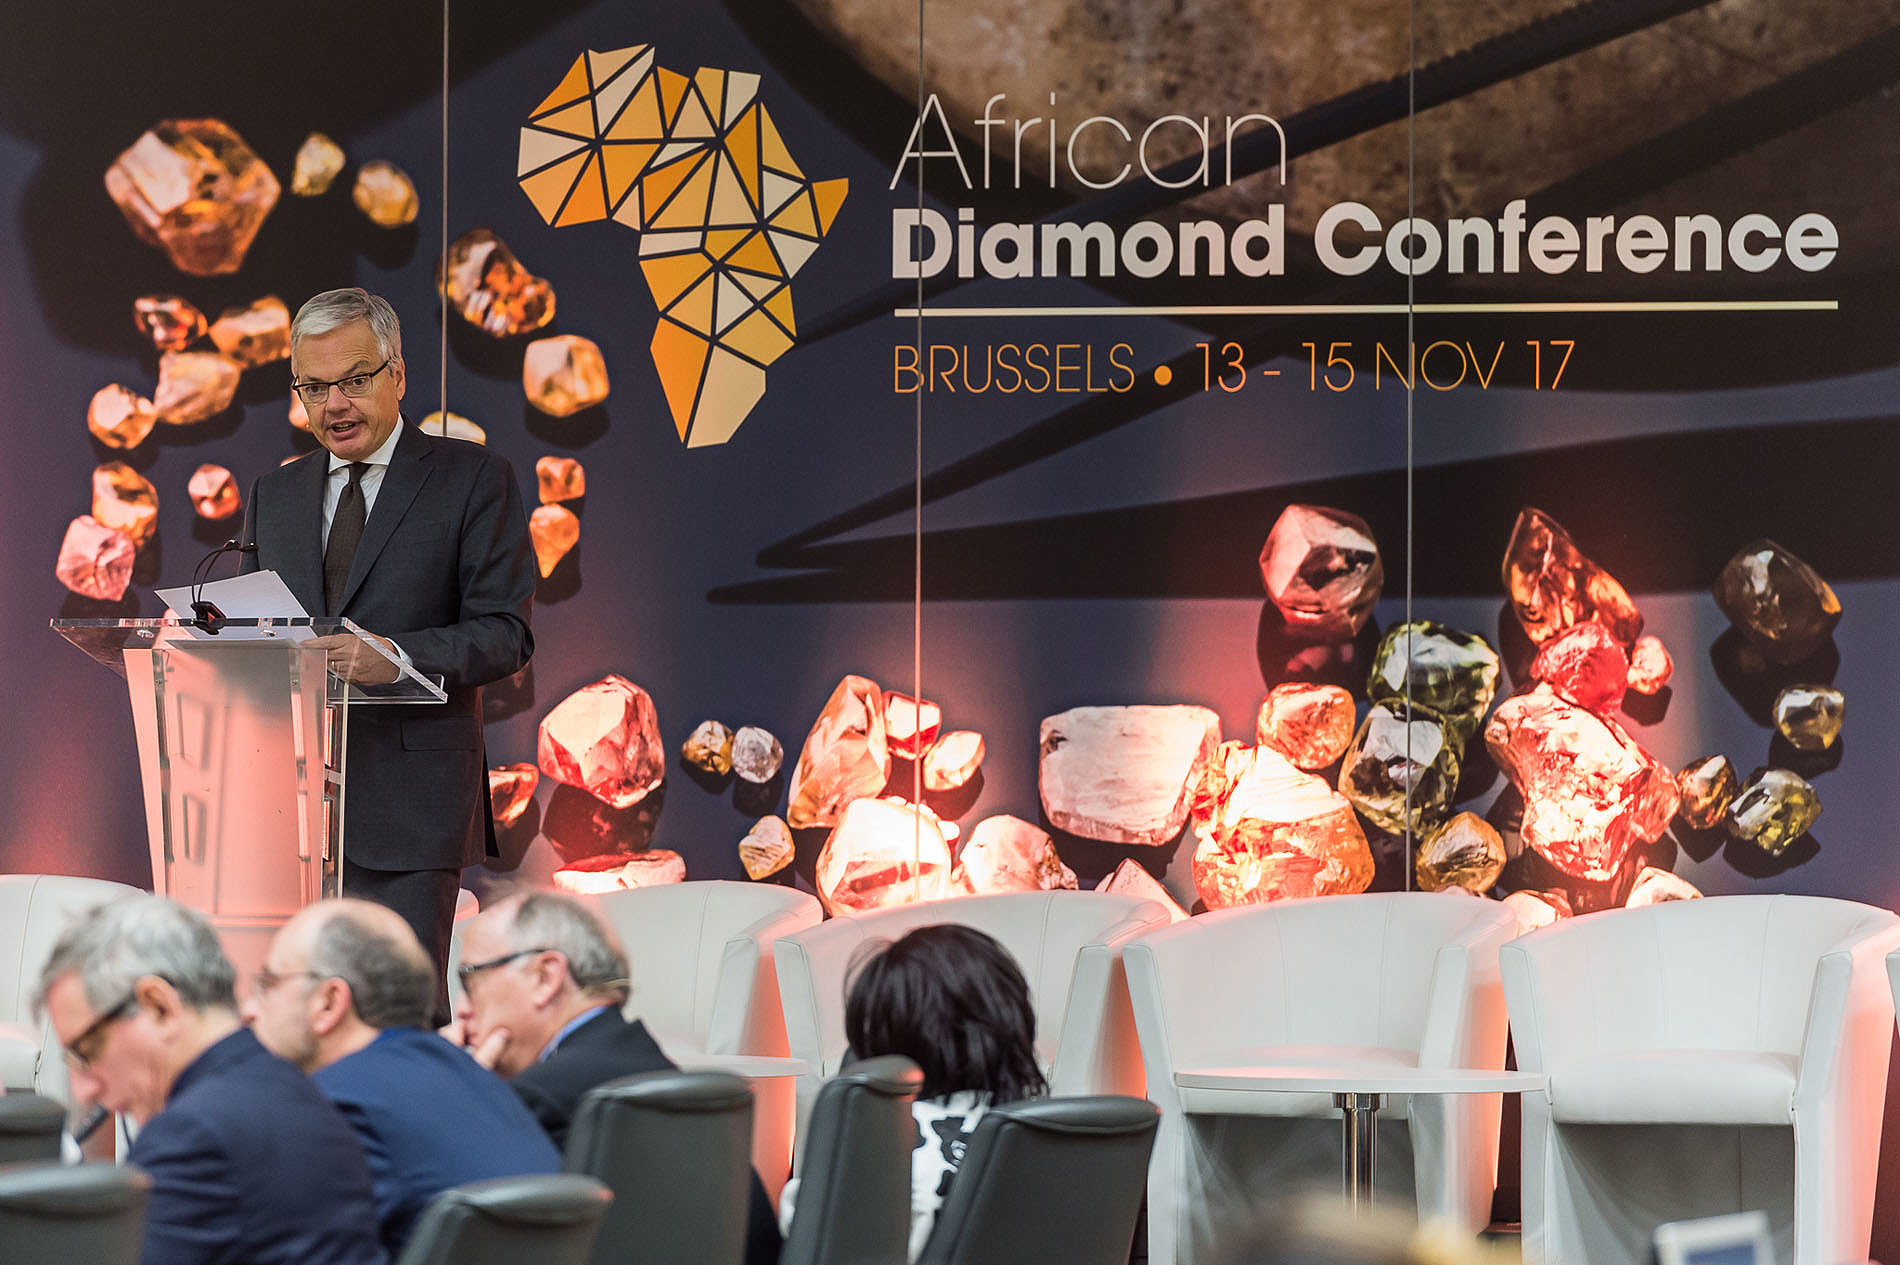 The 2017 African Diamond Conference organized by the Antwerp Diamond World Centre [ADWC]